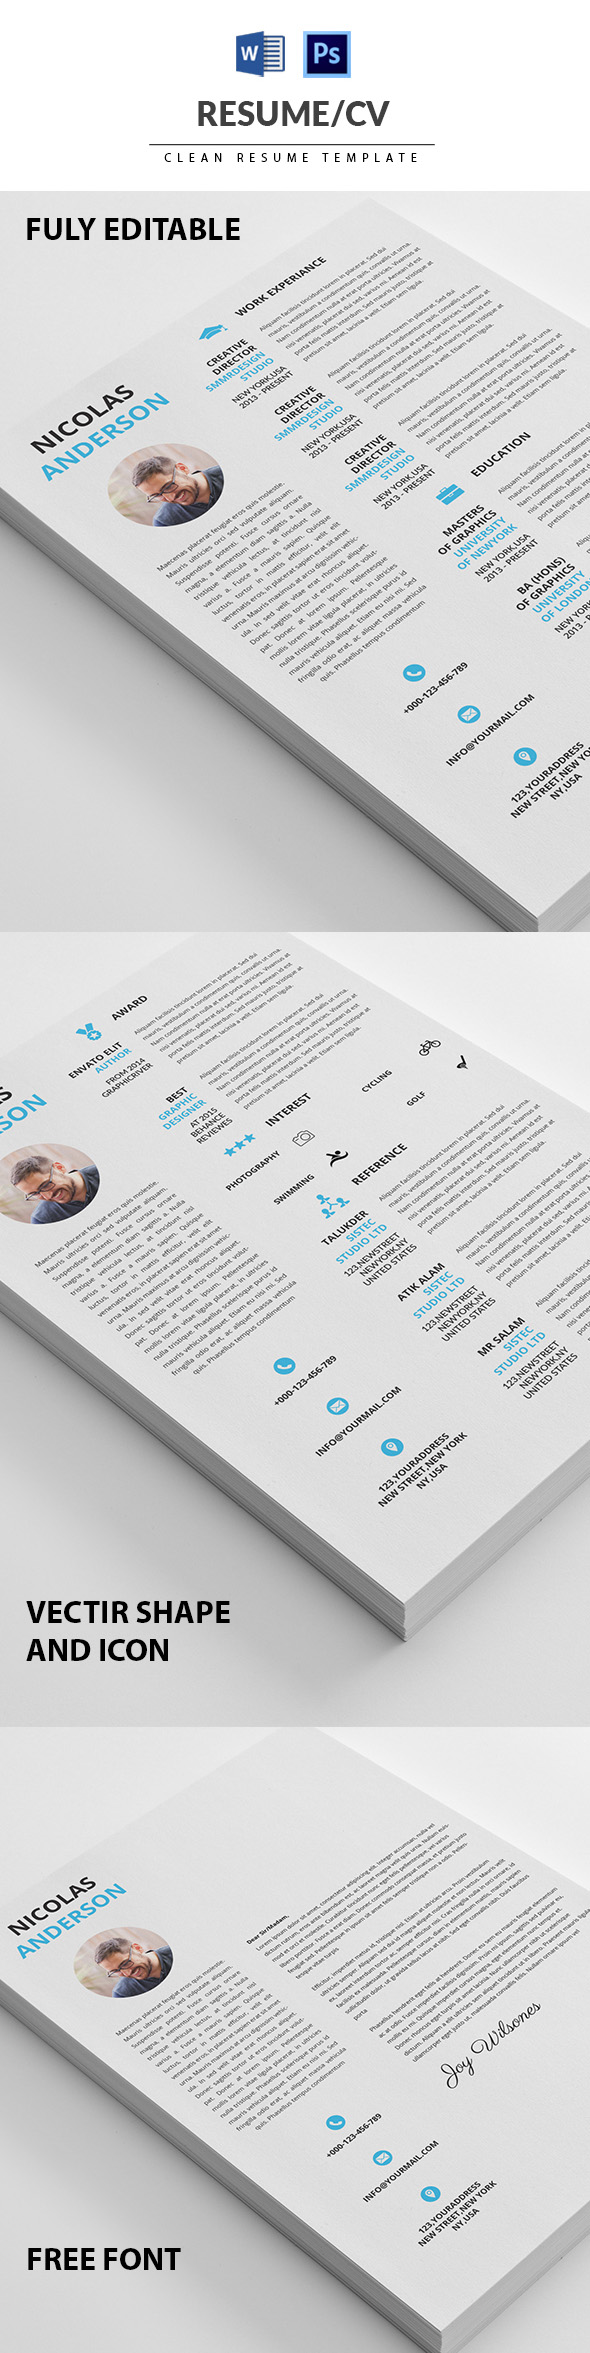 50 Best Minimal Resume Templates - 26